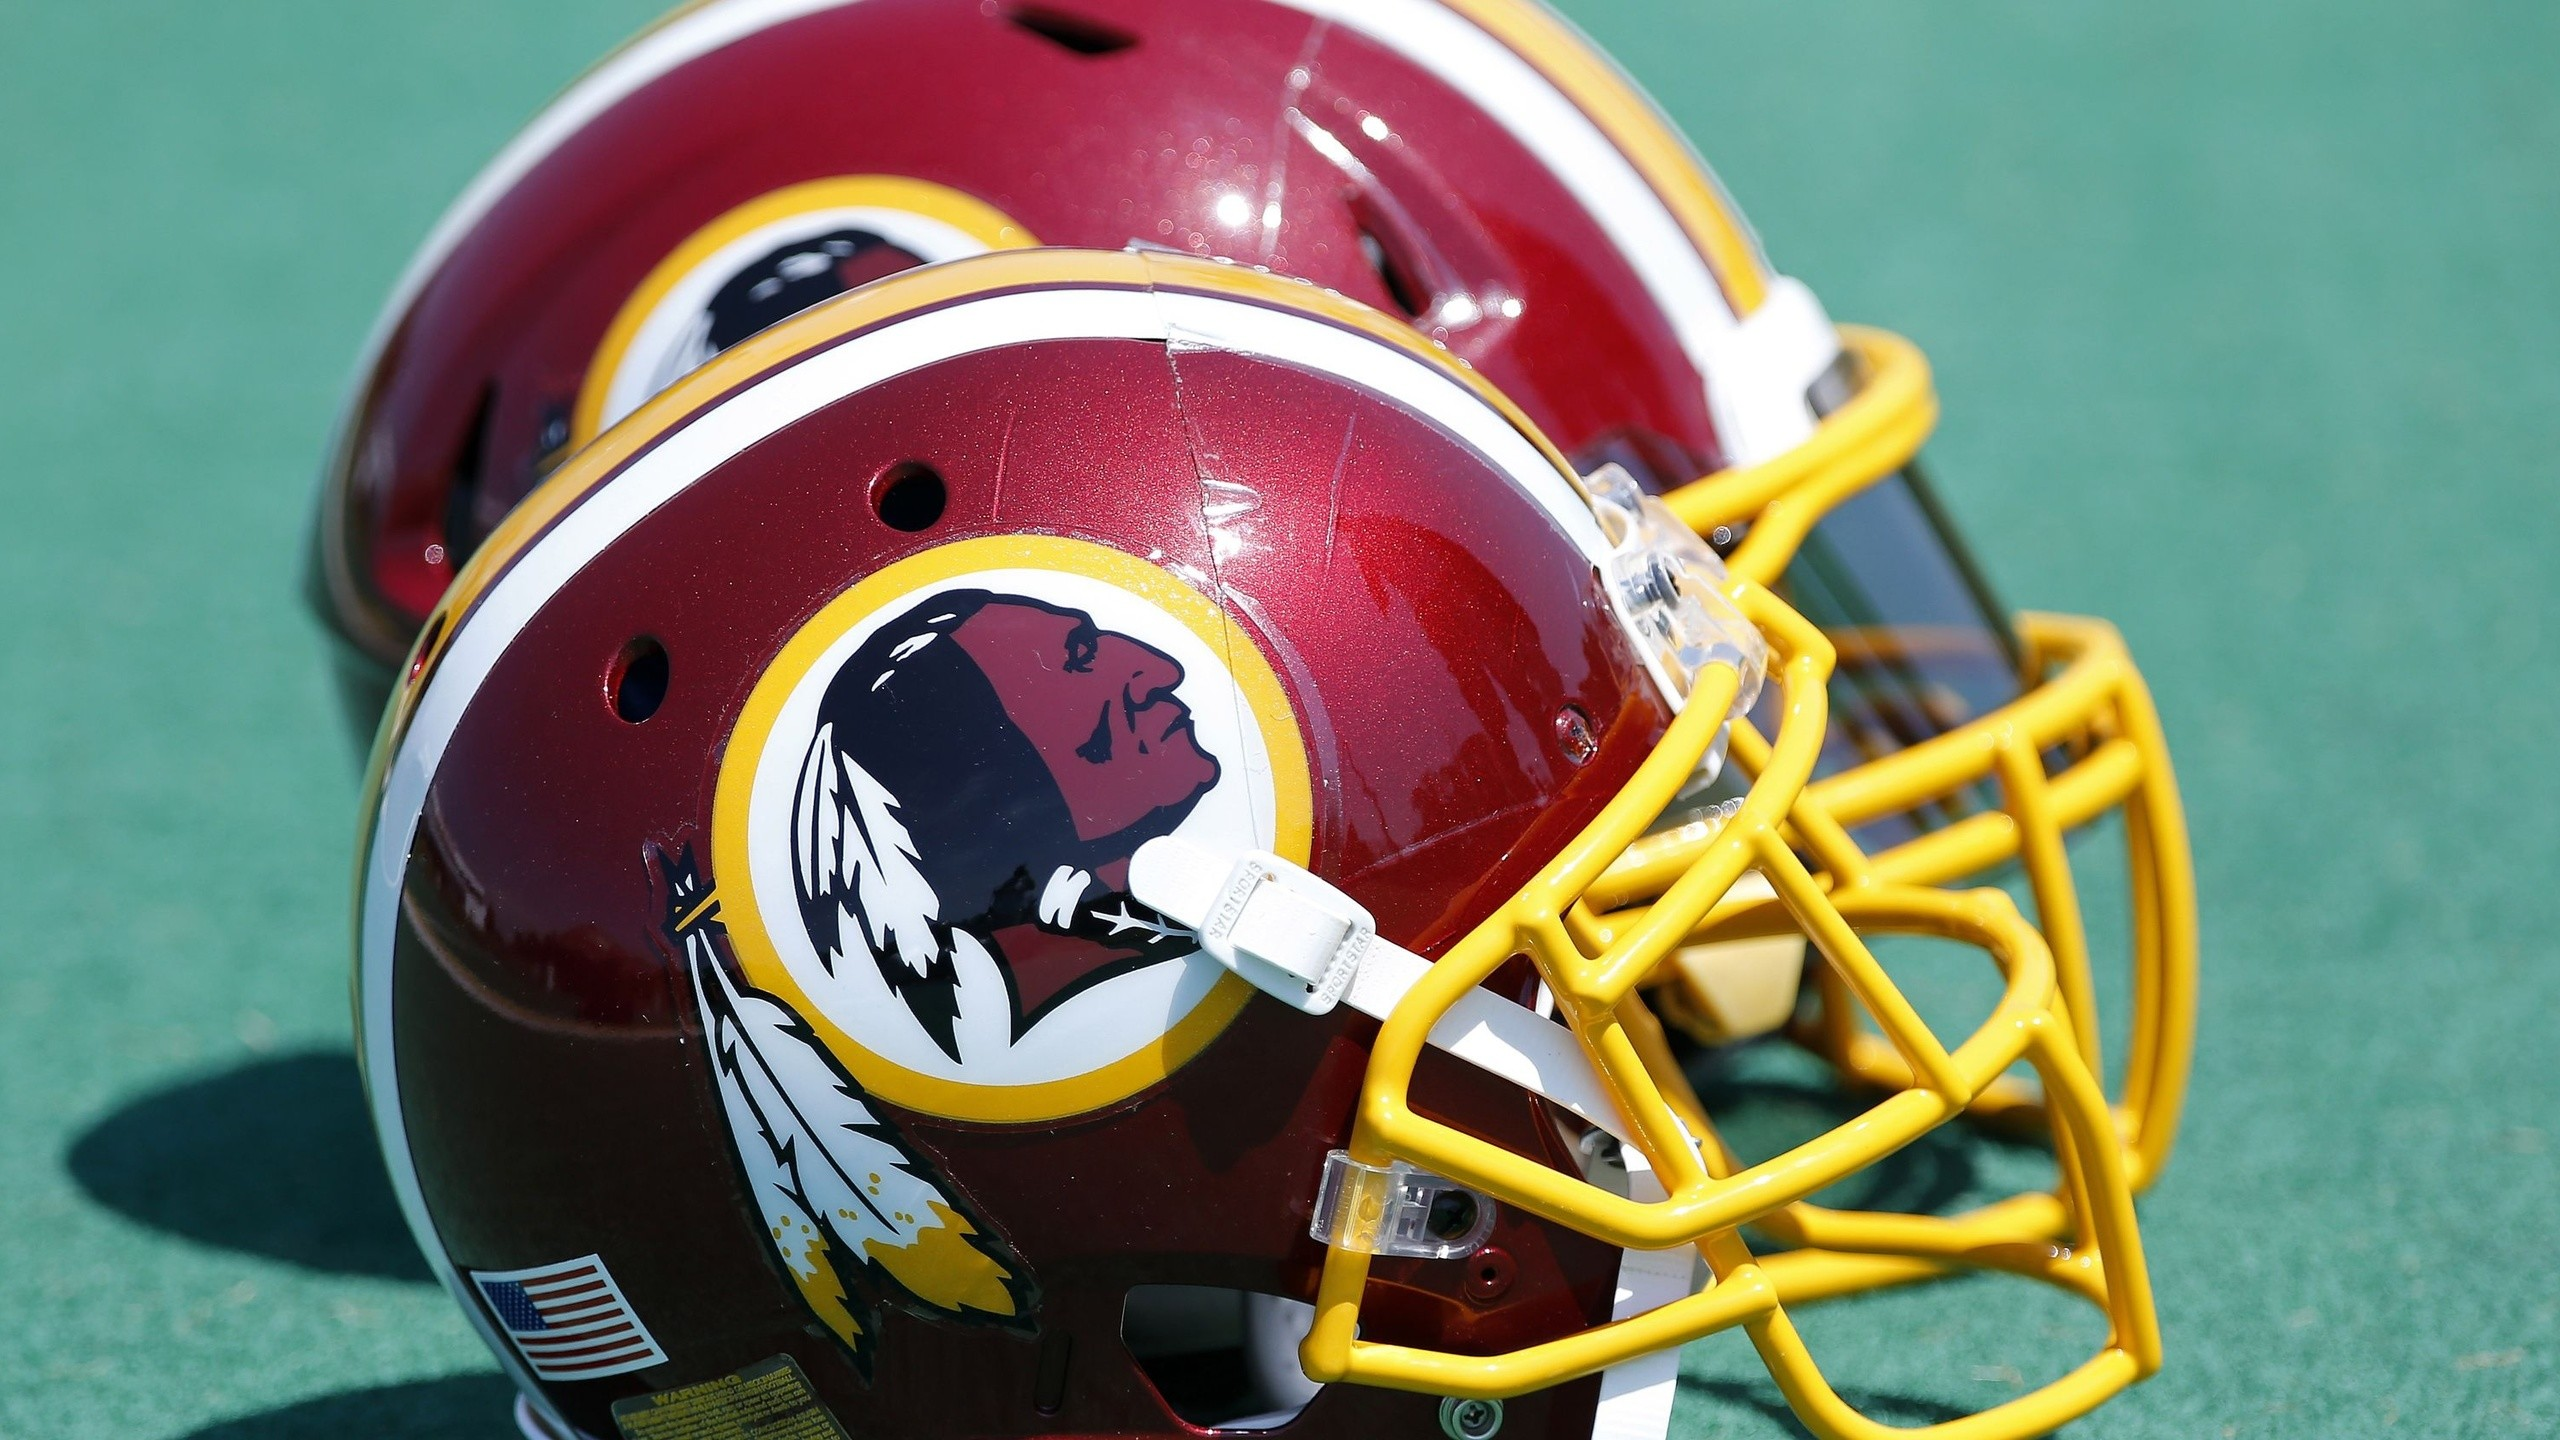 2560x1440 Washington Redskins, Washington Redskins American Football, Washington  Redskins Nfl, Nfl, Sports,